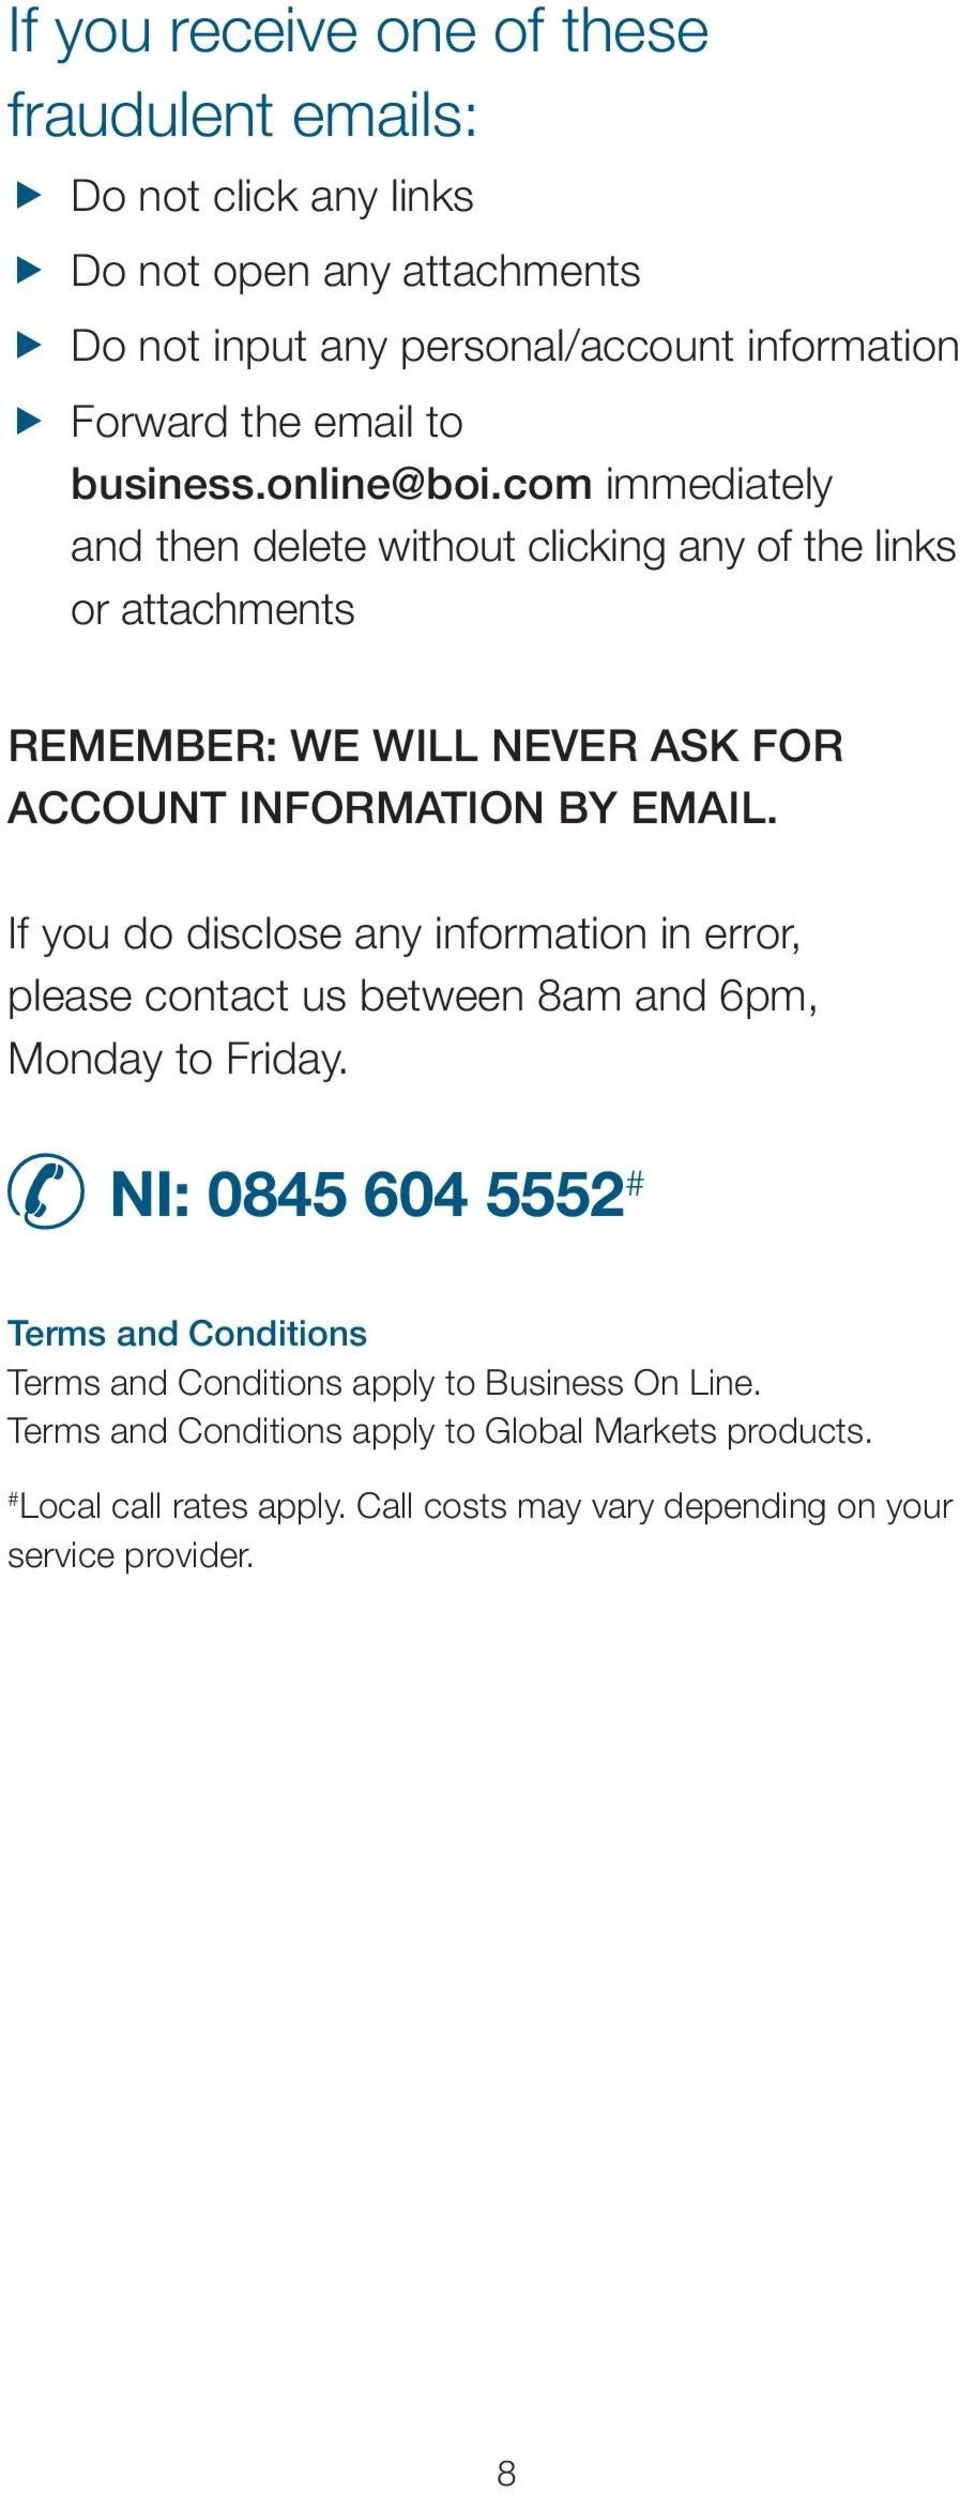 If you do disclose any information in error, please contact us between 8am and 6pm, Monday to Friday.